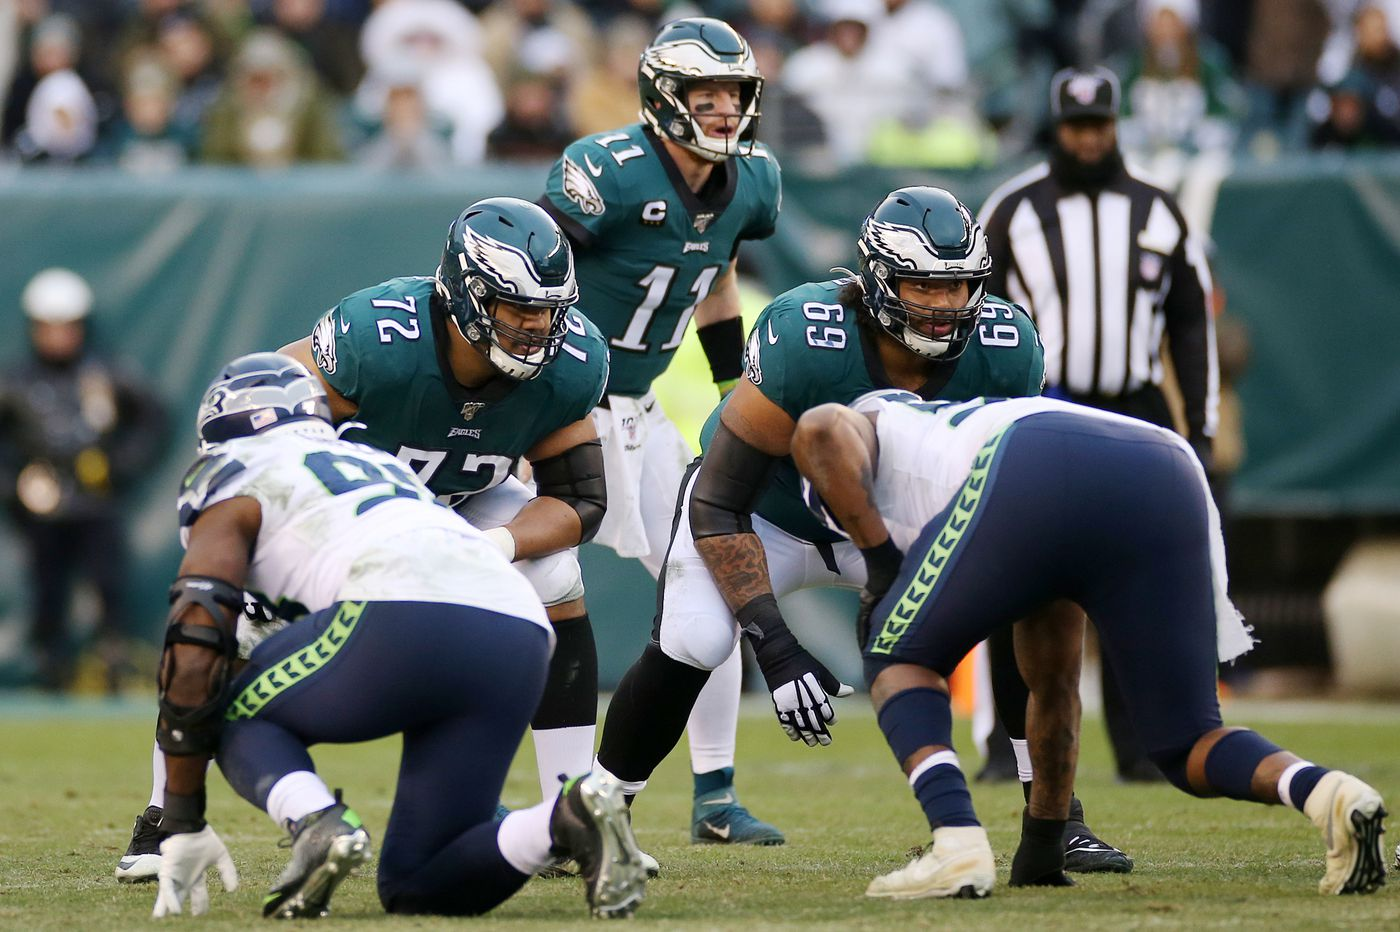 Matt Pryor or Jordan Mailata could complicate the Eagles' decision on moving Jason Peters back to left tackle